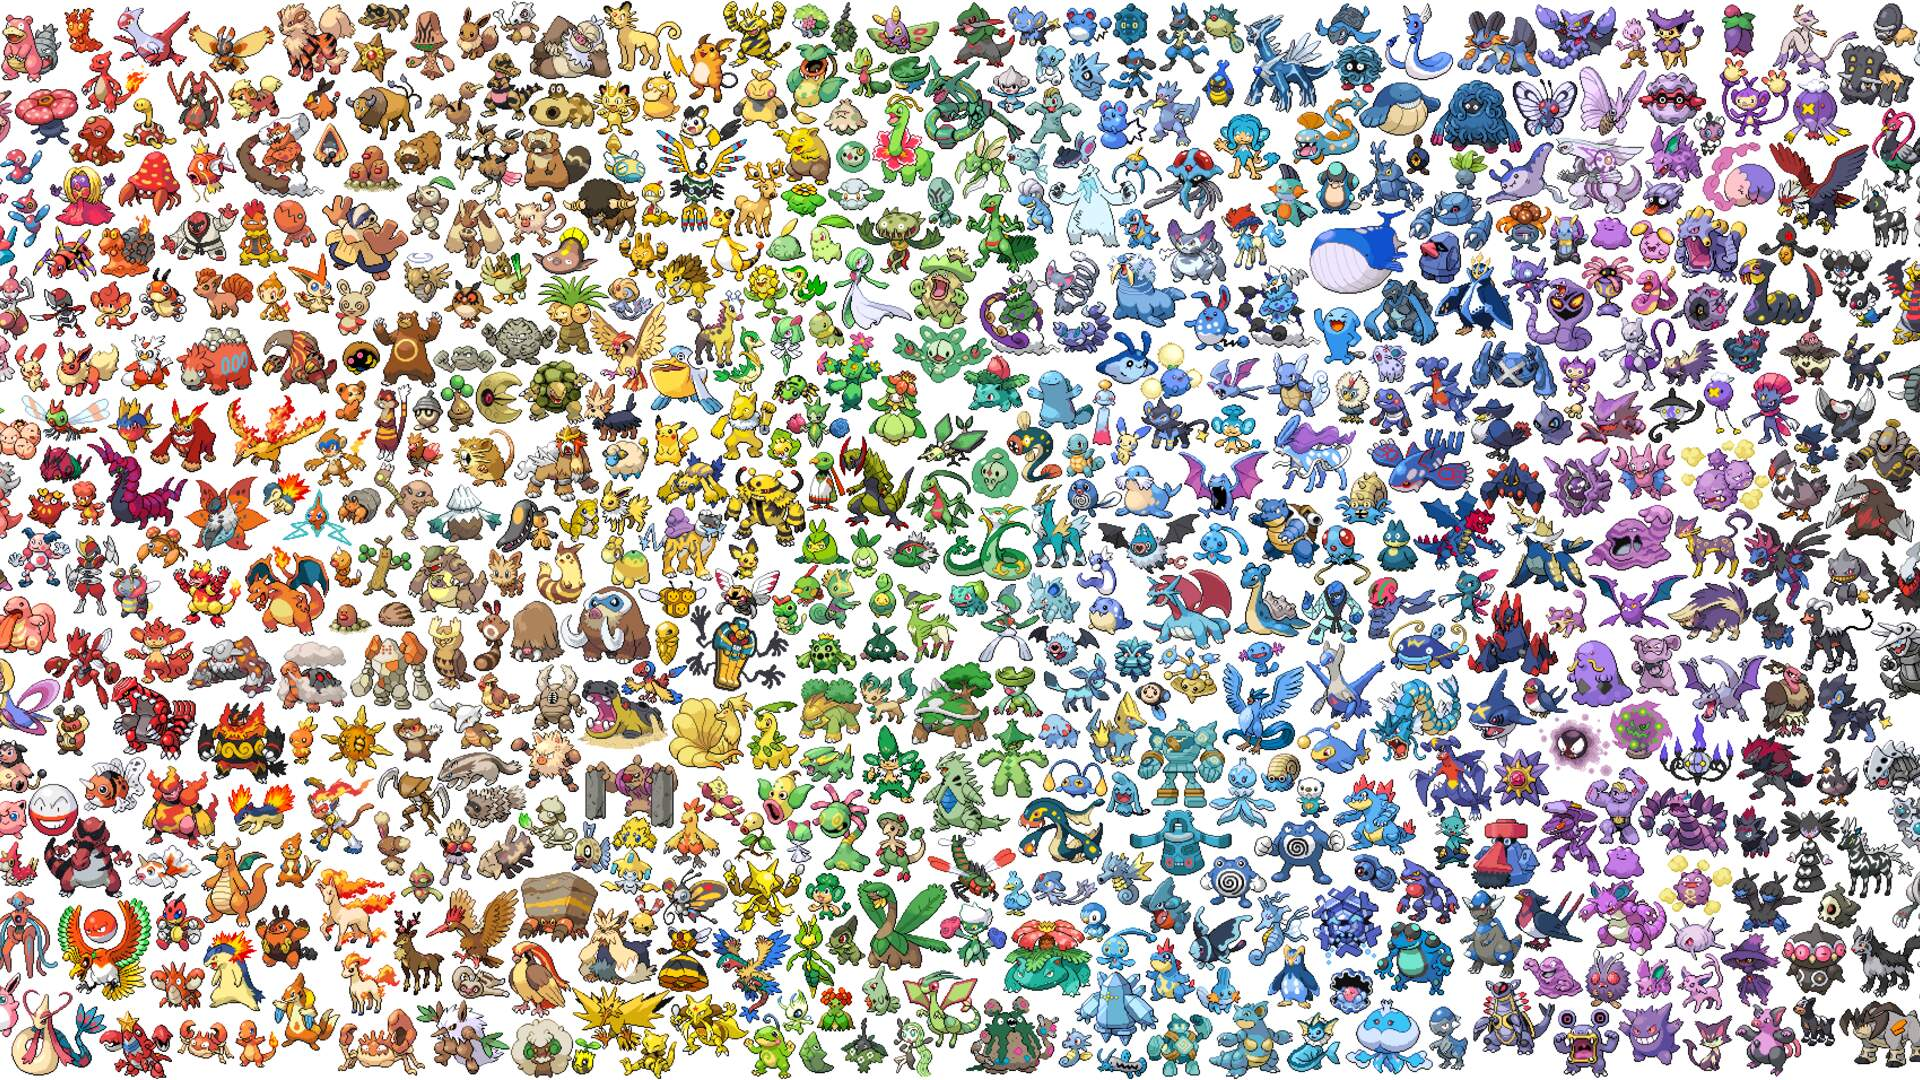 What are the Strongest, Most Competitive Pokemon That'll Help You Build the Best Team?